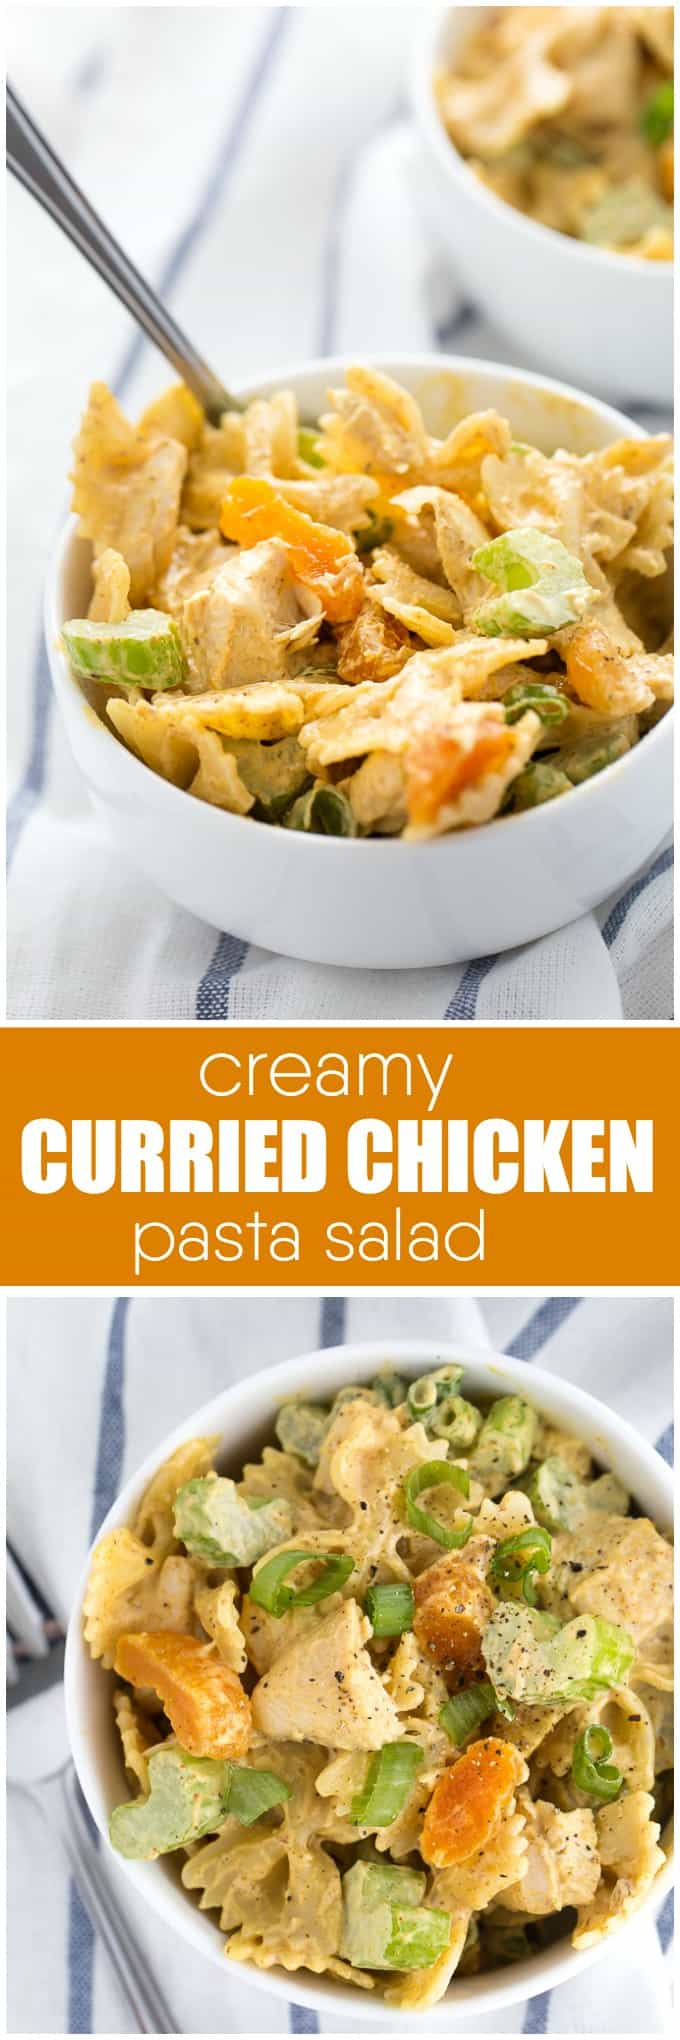 Creamy Curried Chicken Pasta Salad - Creamy, mildly spicy and ...